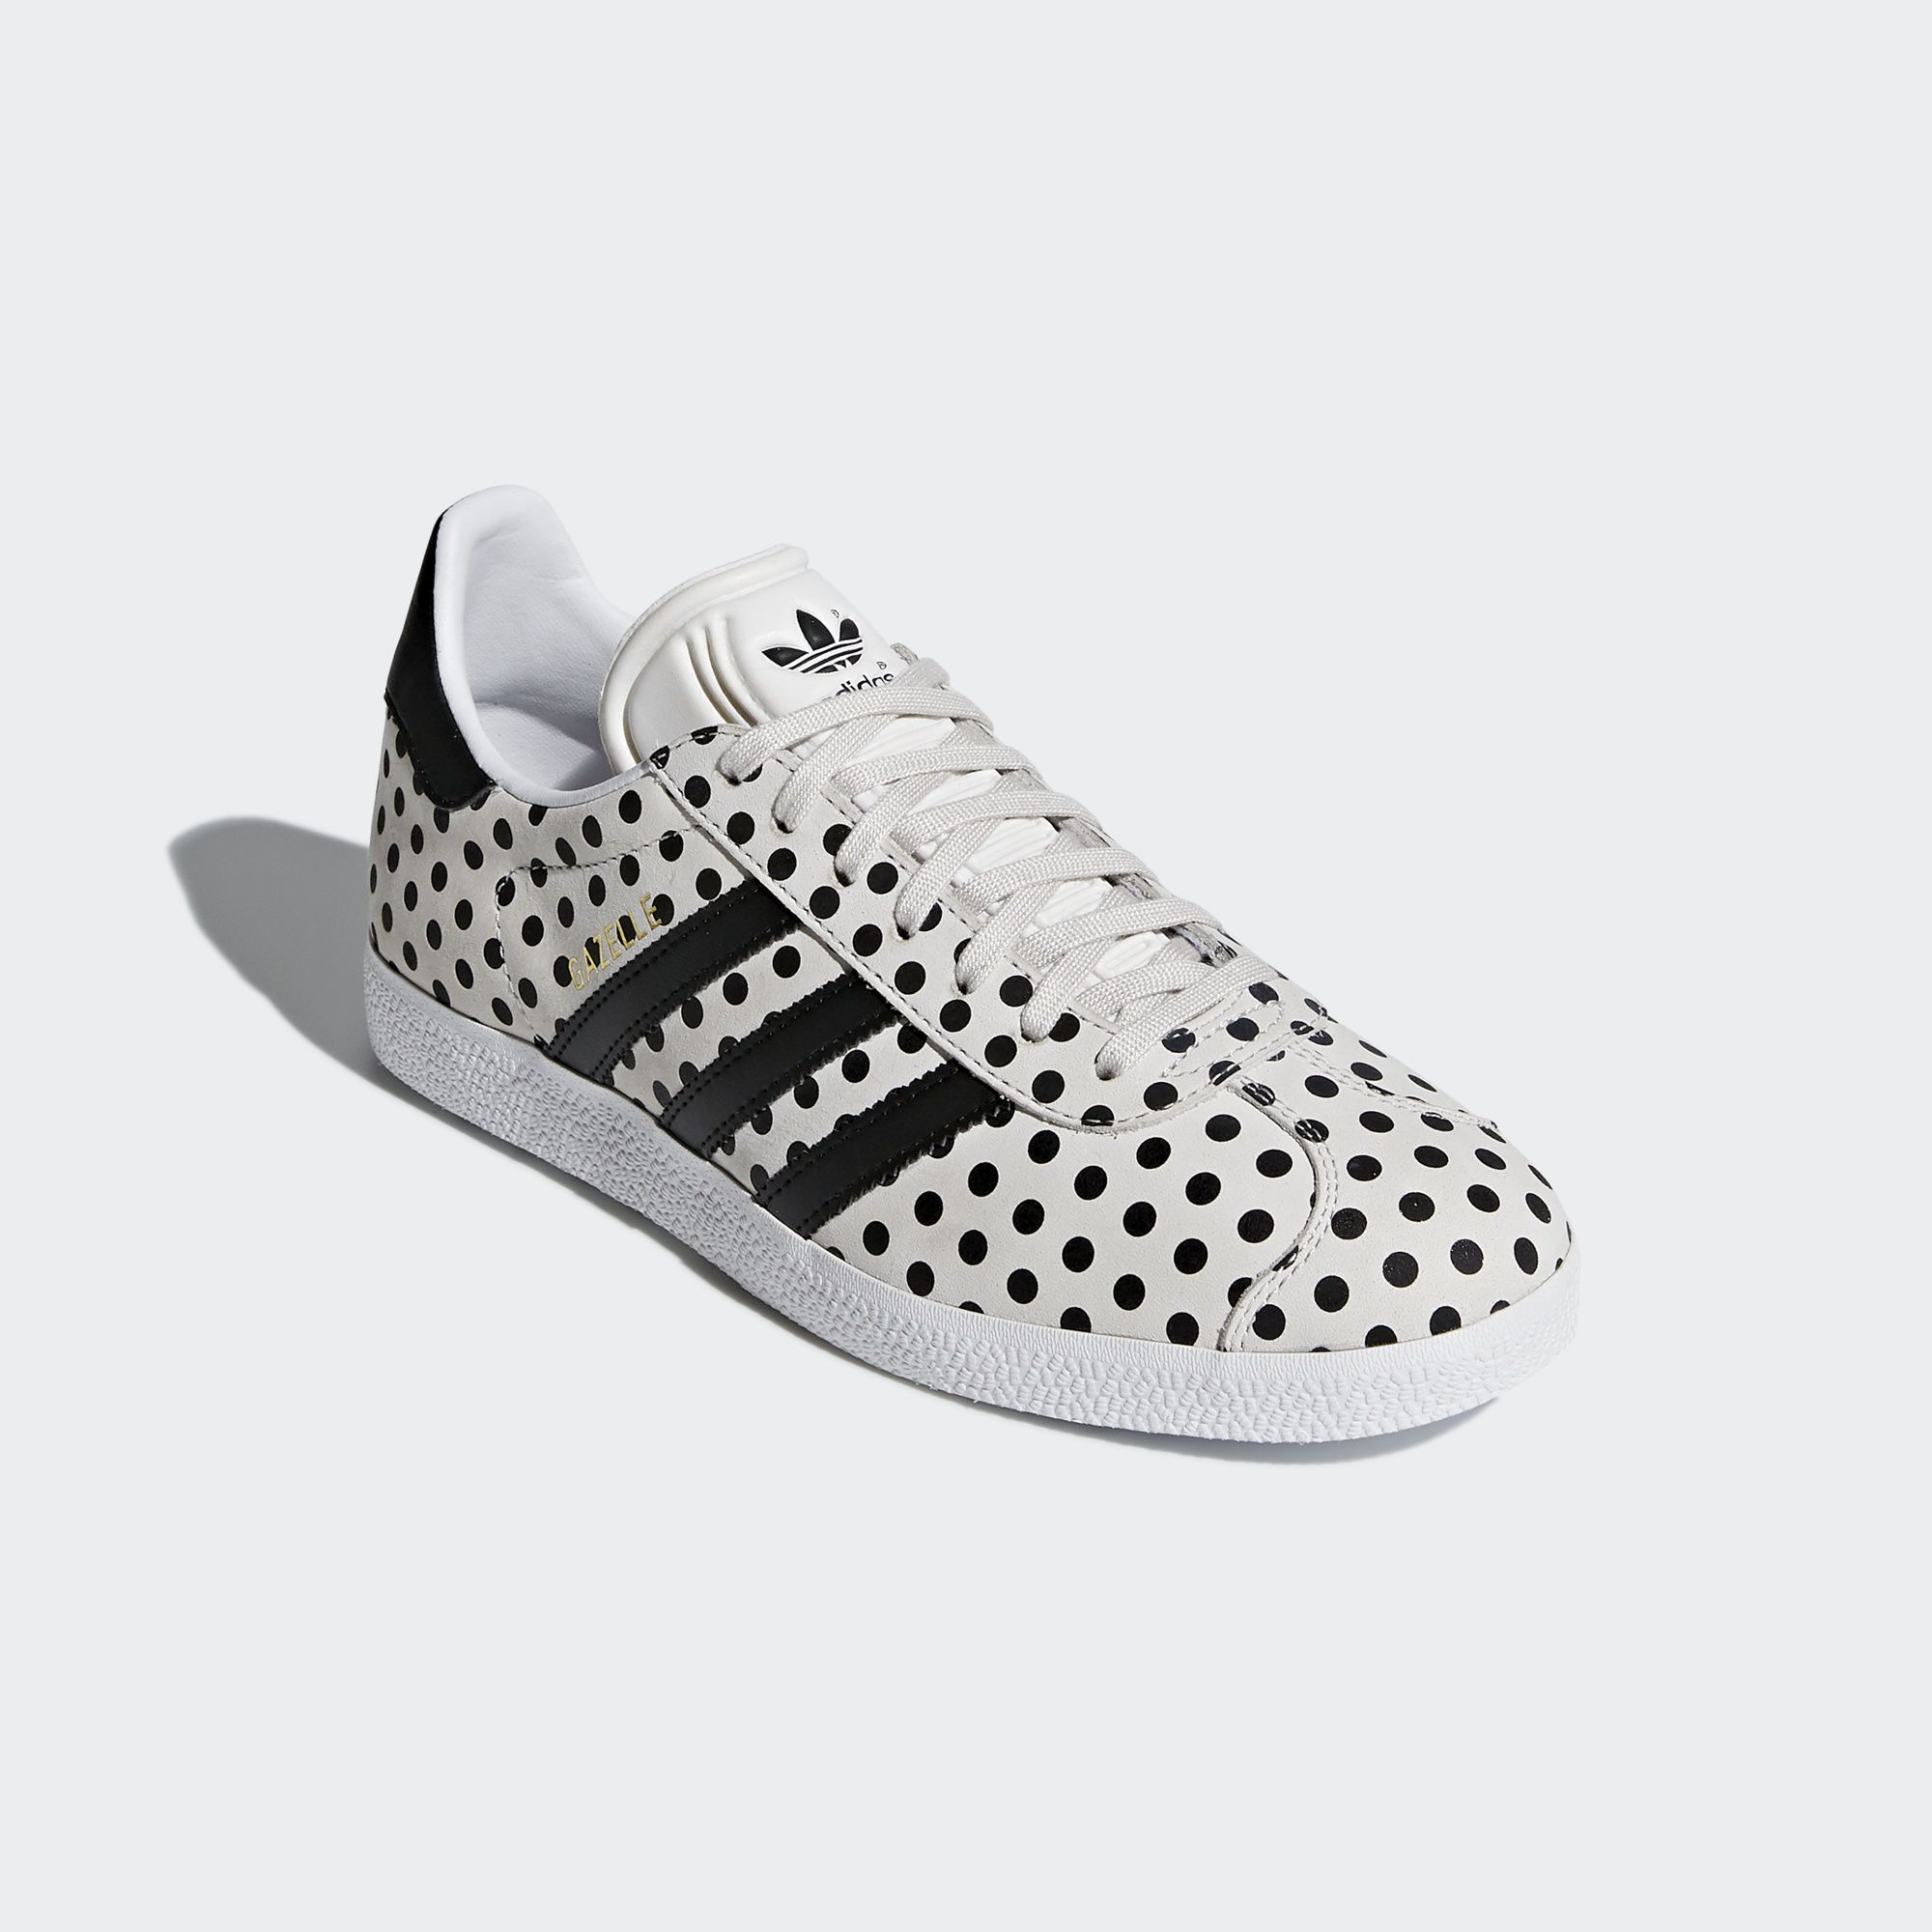 WhiteUs Adidas WhiteUs Zapatos WhiteUs Shoes Adidas Gazelle Adidas Gazelle Gazelle Shoes Shoes Zapatos 8On0wPkX